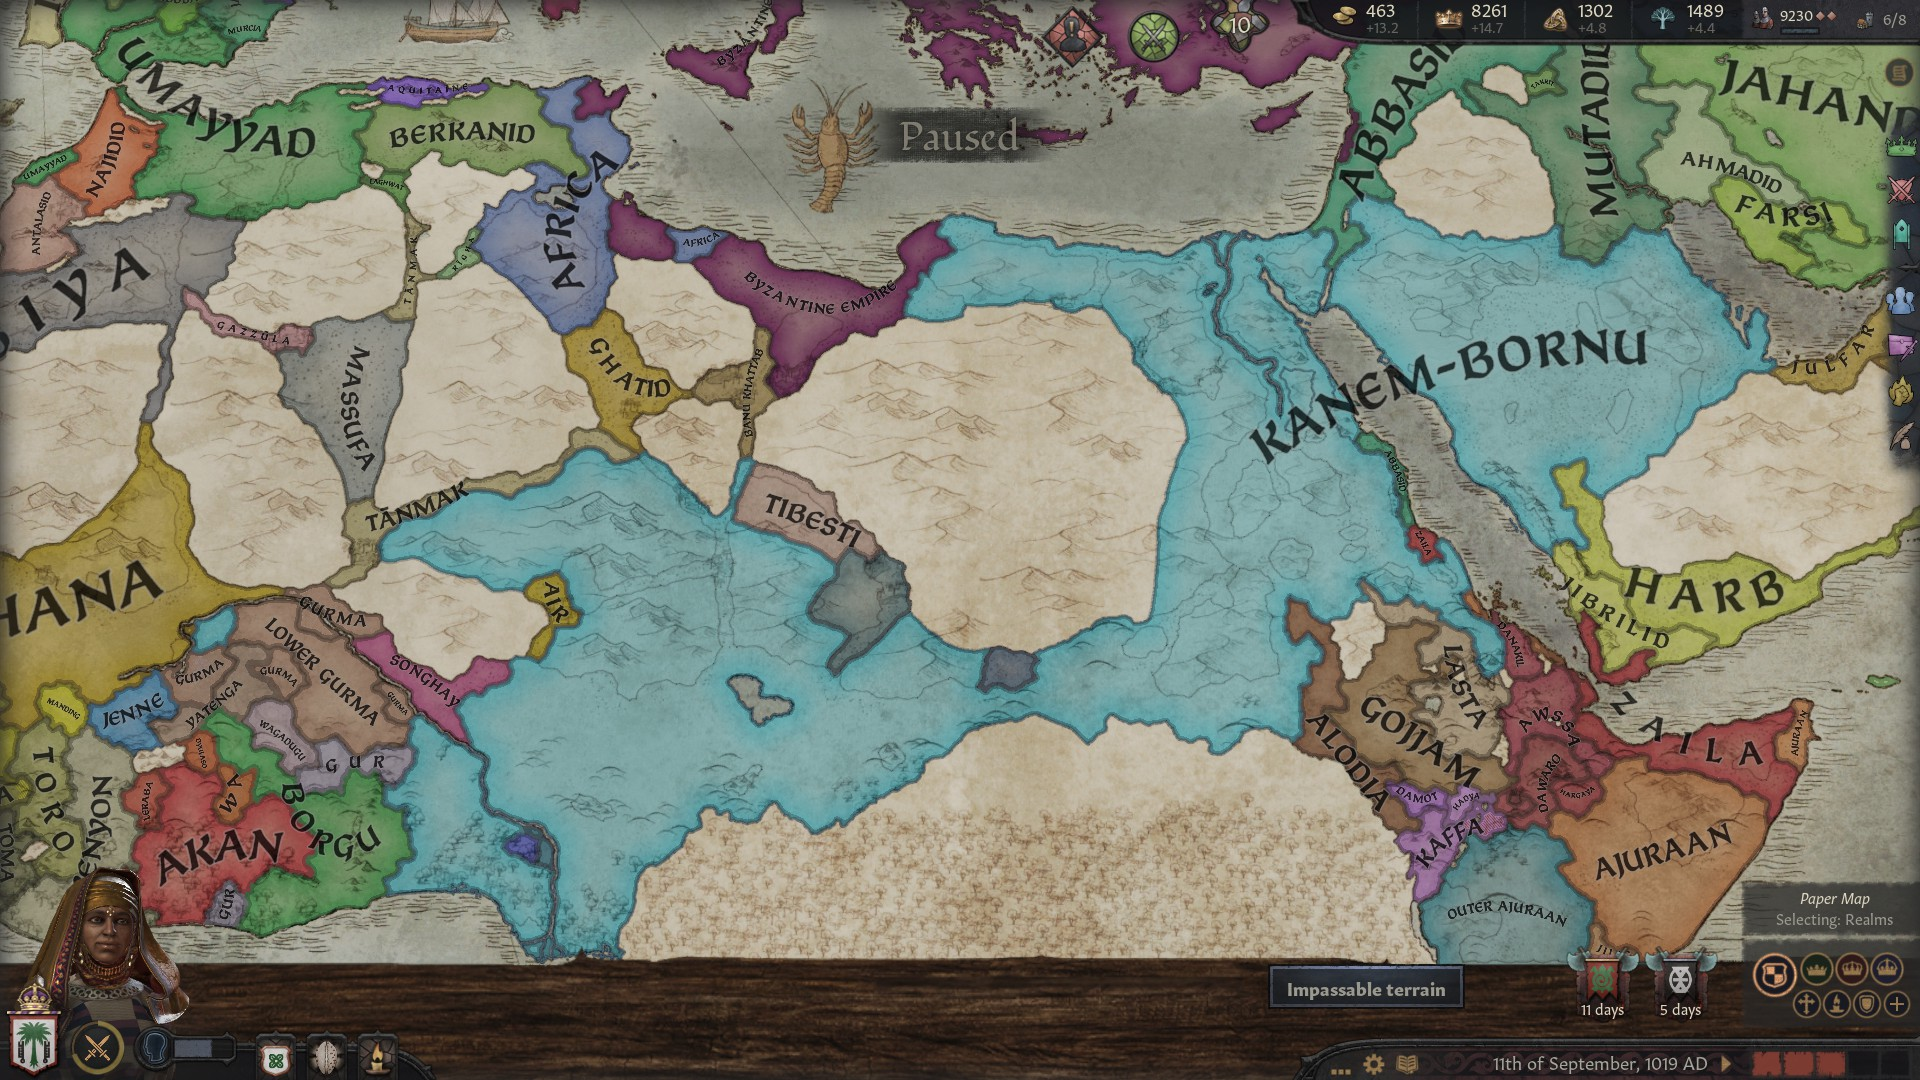 Coring logic in peace deals   Paradox Interactive Forums